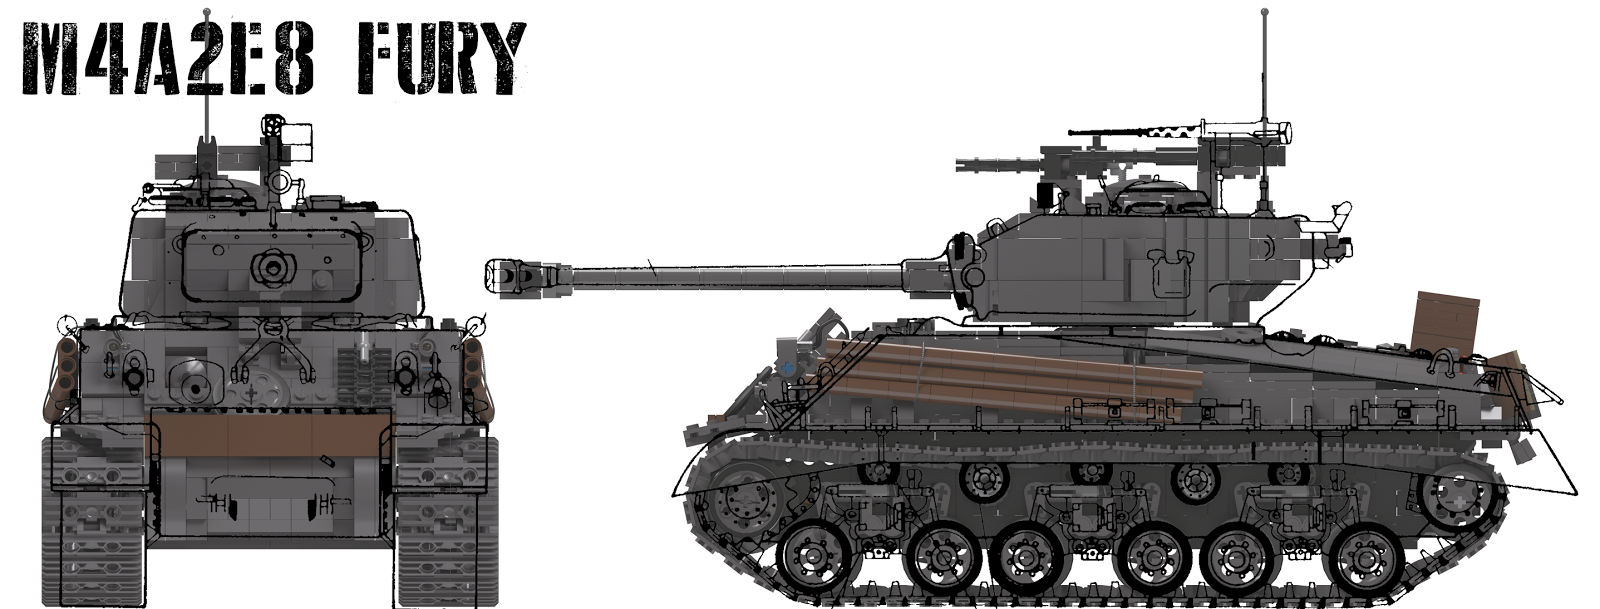 m4a3e8 fury matchmaking Eu and na announcements we have for you both service announcements and wargamings rundown of patch changes on eu then na the world of tanks servers will be unavailable on the 31052017 from 03:00 cest to 09:00 cest due to this update.